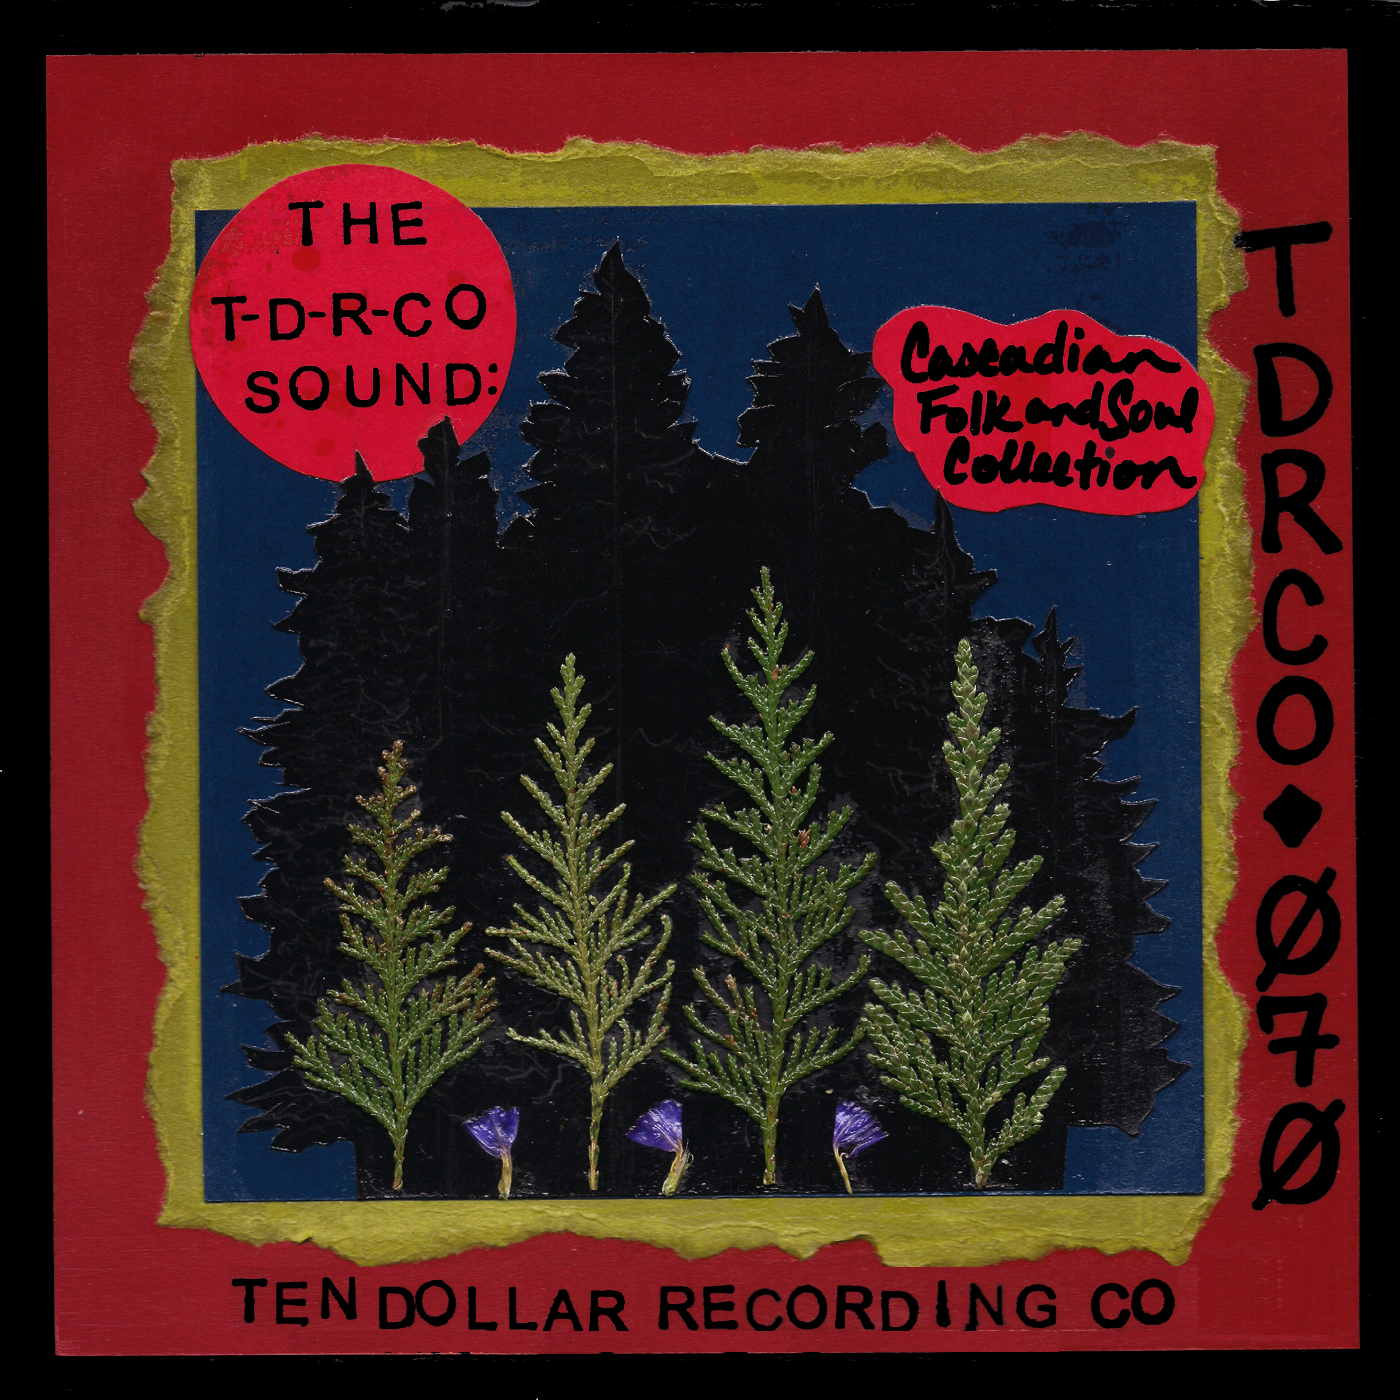 The T-D-R-Co Sound: Cascadian Folk and Soul Collection